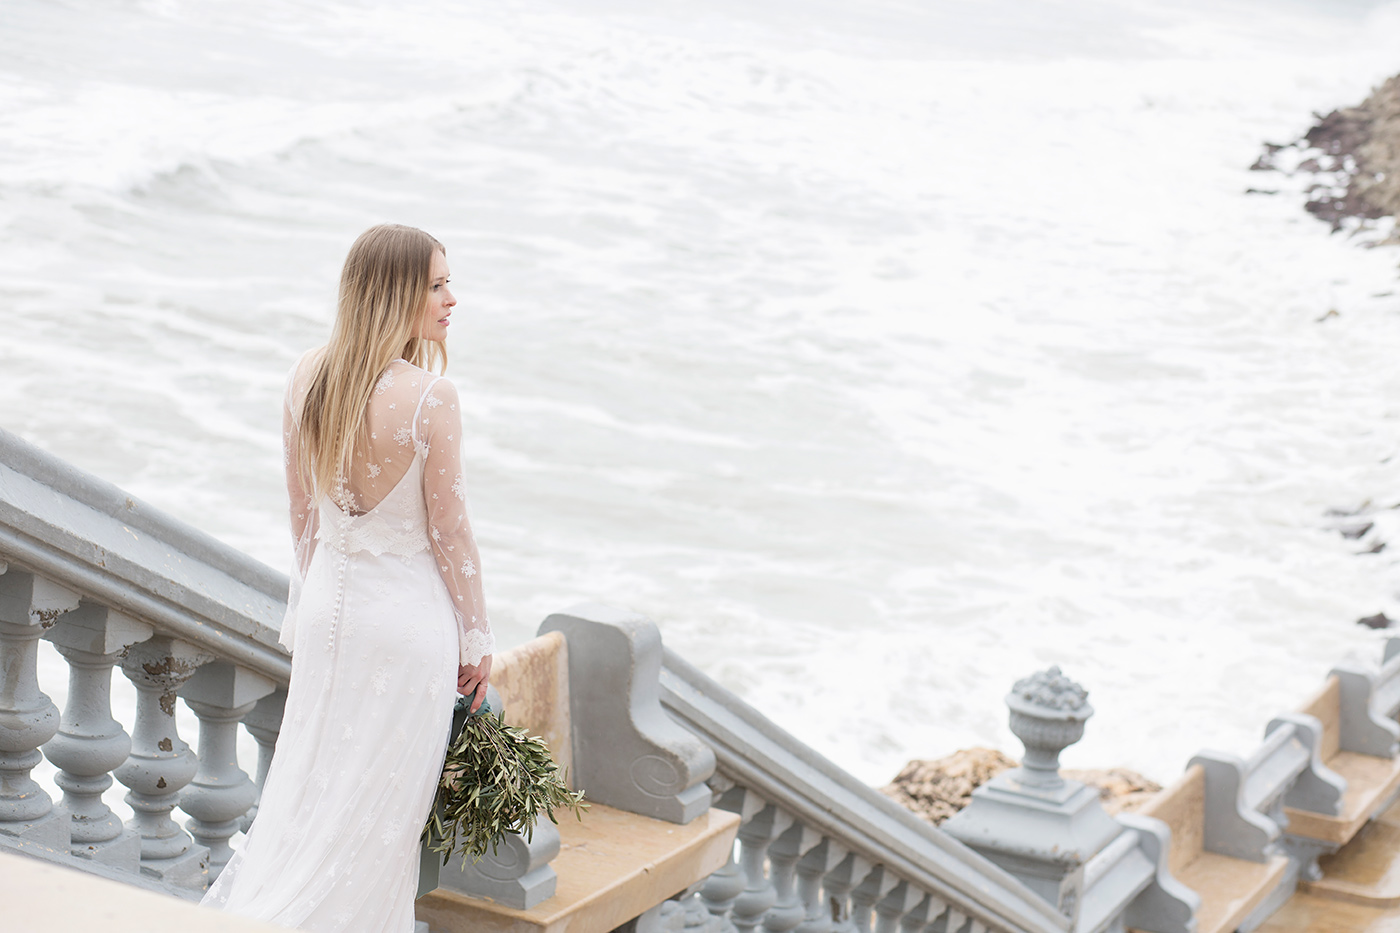 Mediterranean wedding styled shoot in Sitges